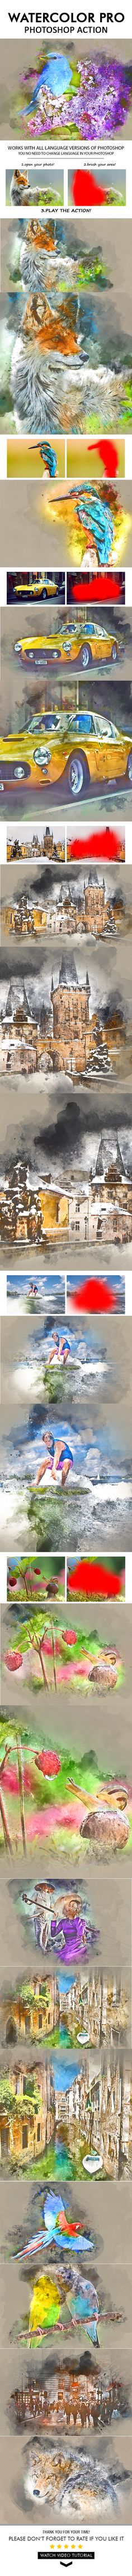 Watercolor Pro Photoshop Action Watercolor Action turns your photo into realistic watercolor picture. Action perfect works with portraits or other photos. Create professional watercolor artworks from your photos in the easiest possible way. Not only is it simple to generate the watercolor art, it then becomes lots of fun playing around with all the layers!After the action completes the rendering, it creates a well-organized layer structure.